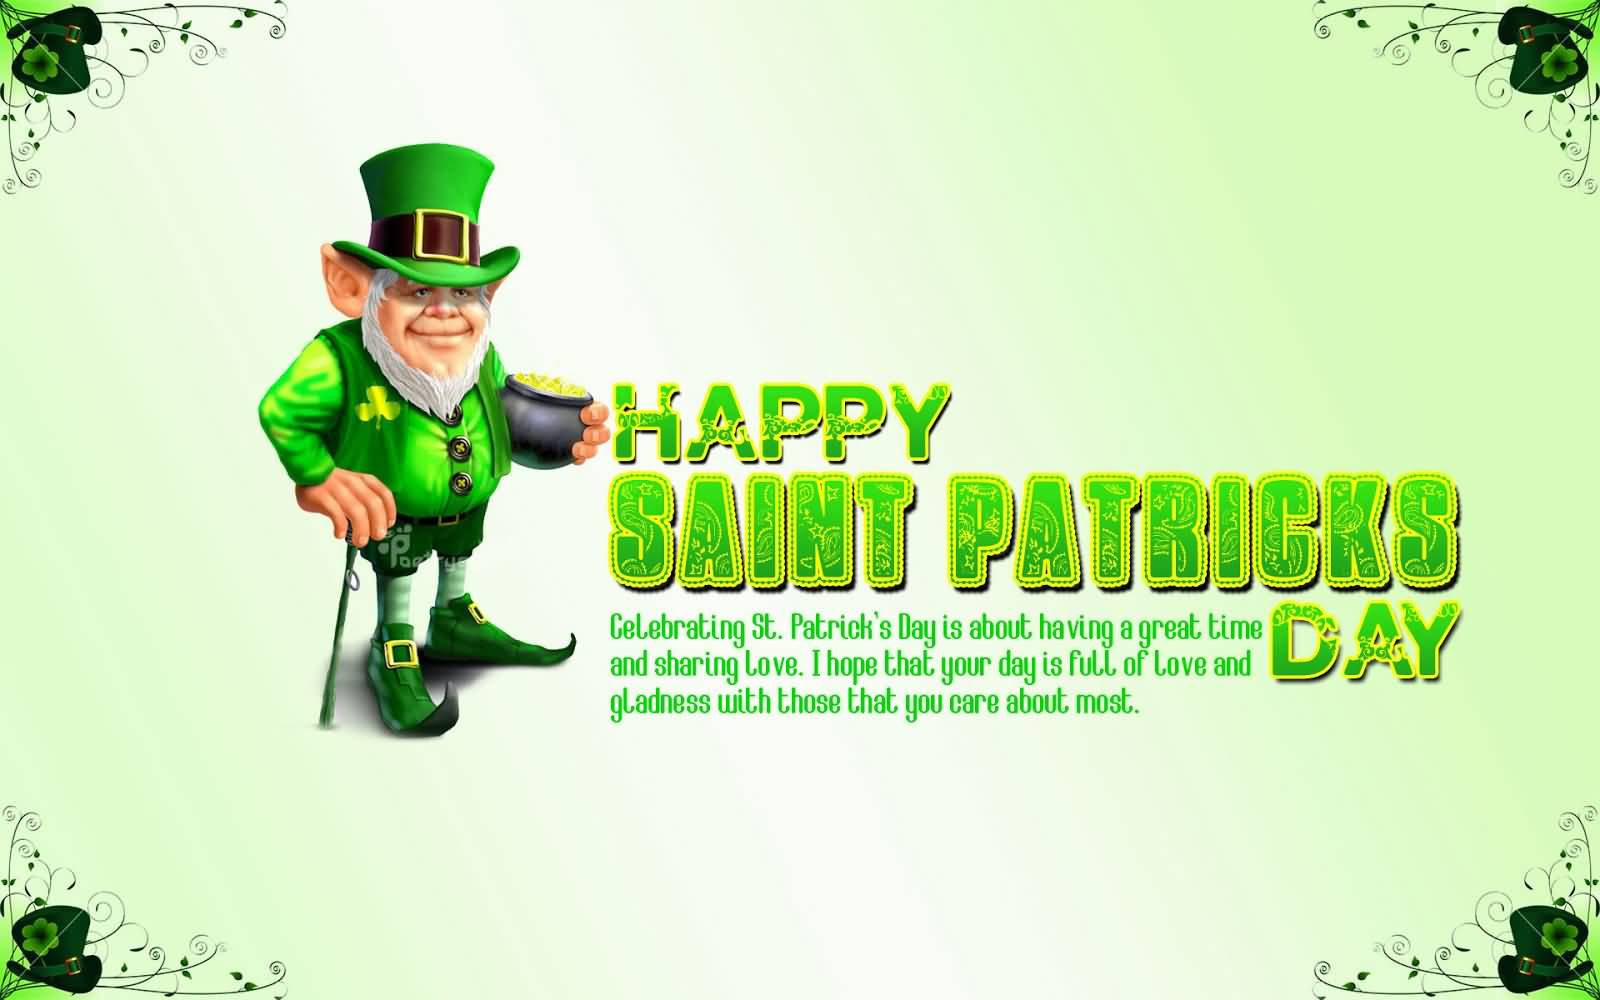 Celebrating Saint Patrick's Day Is About Having A Great Time And Sharing Love.